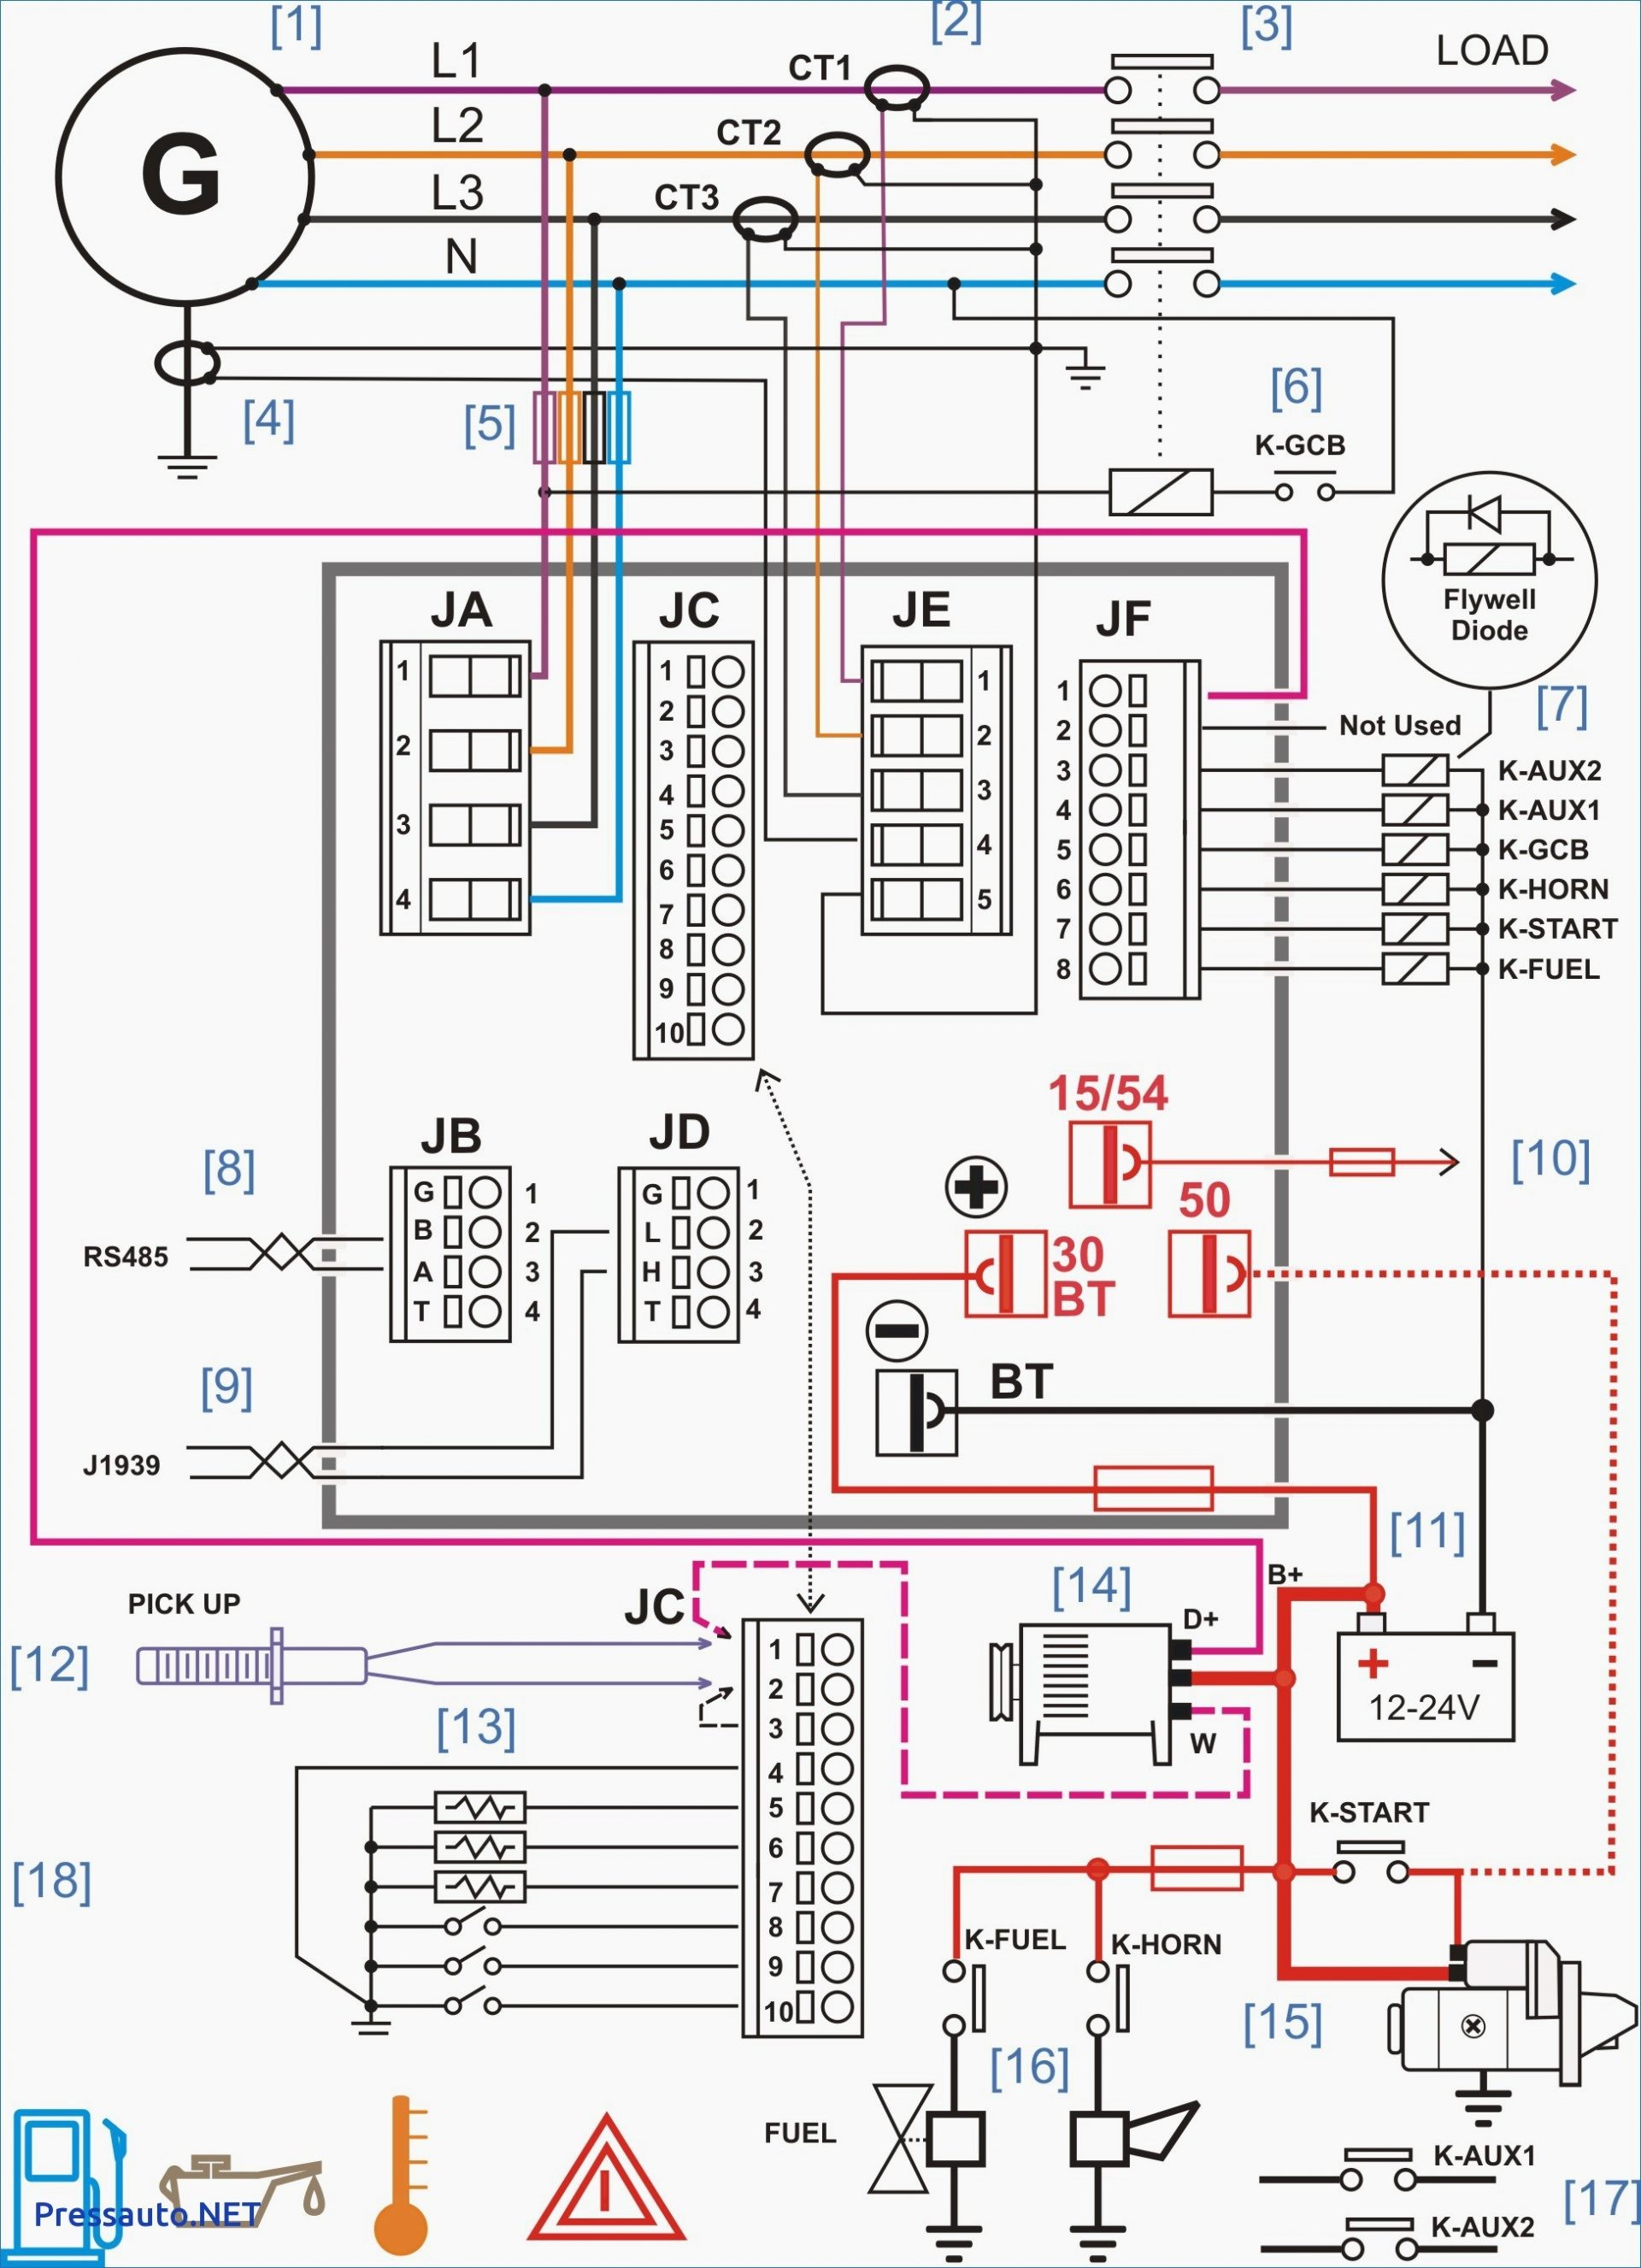 Colorful franklin electric control box wiring diagram picture contemporary free sample detail franklin electric control box wiring swarovskicordoba Images